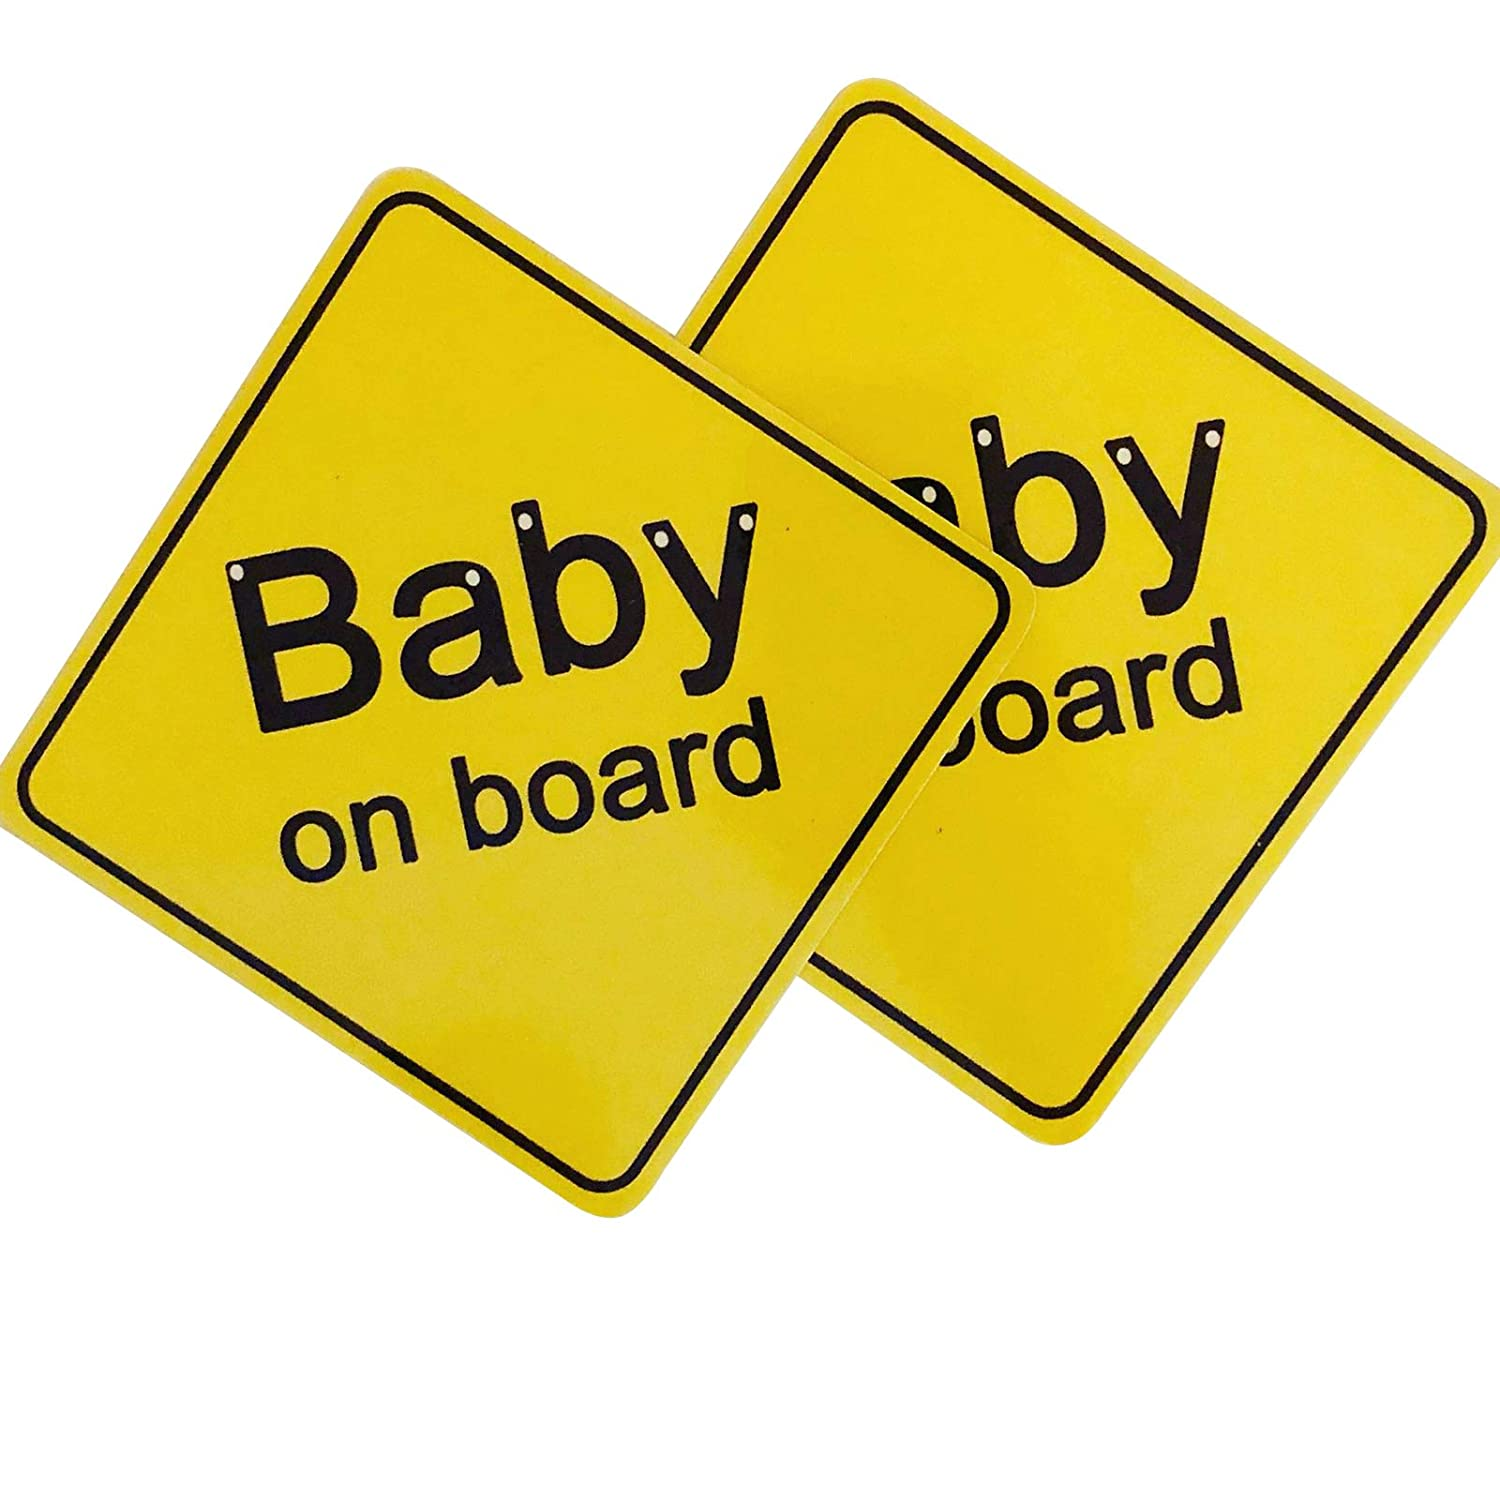 Baby on Board Magnet Car Sign – Drive Safely by Alerting Other Drivers (2 Pack) by Best Magnet